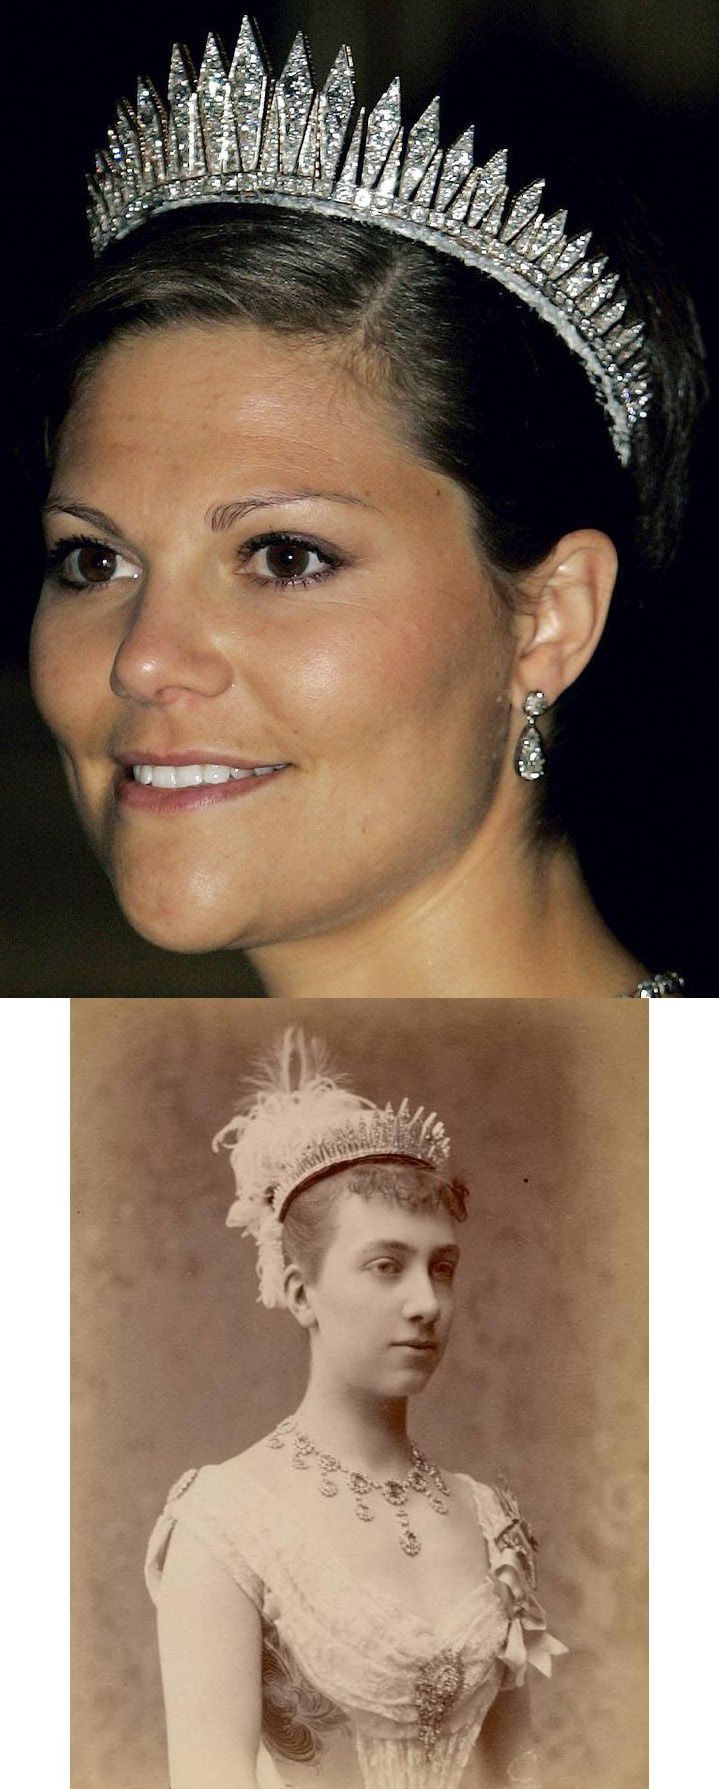 The Baden Fringe Tiara of Sweden. It originally belonged to Queen Victoria of Sweden (1862-1930). It was a wedding gift from her parents, the Grand Duke and Duchess of Baden, for her 1881 marriage to Crown Prince Gustaf of Sweden. The tiara is composed of 47 diamond rays. Above: Victoria, Crown Princess of Sweden, Bottom: Queen Victoria of Sweden